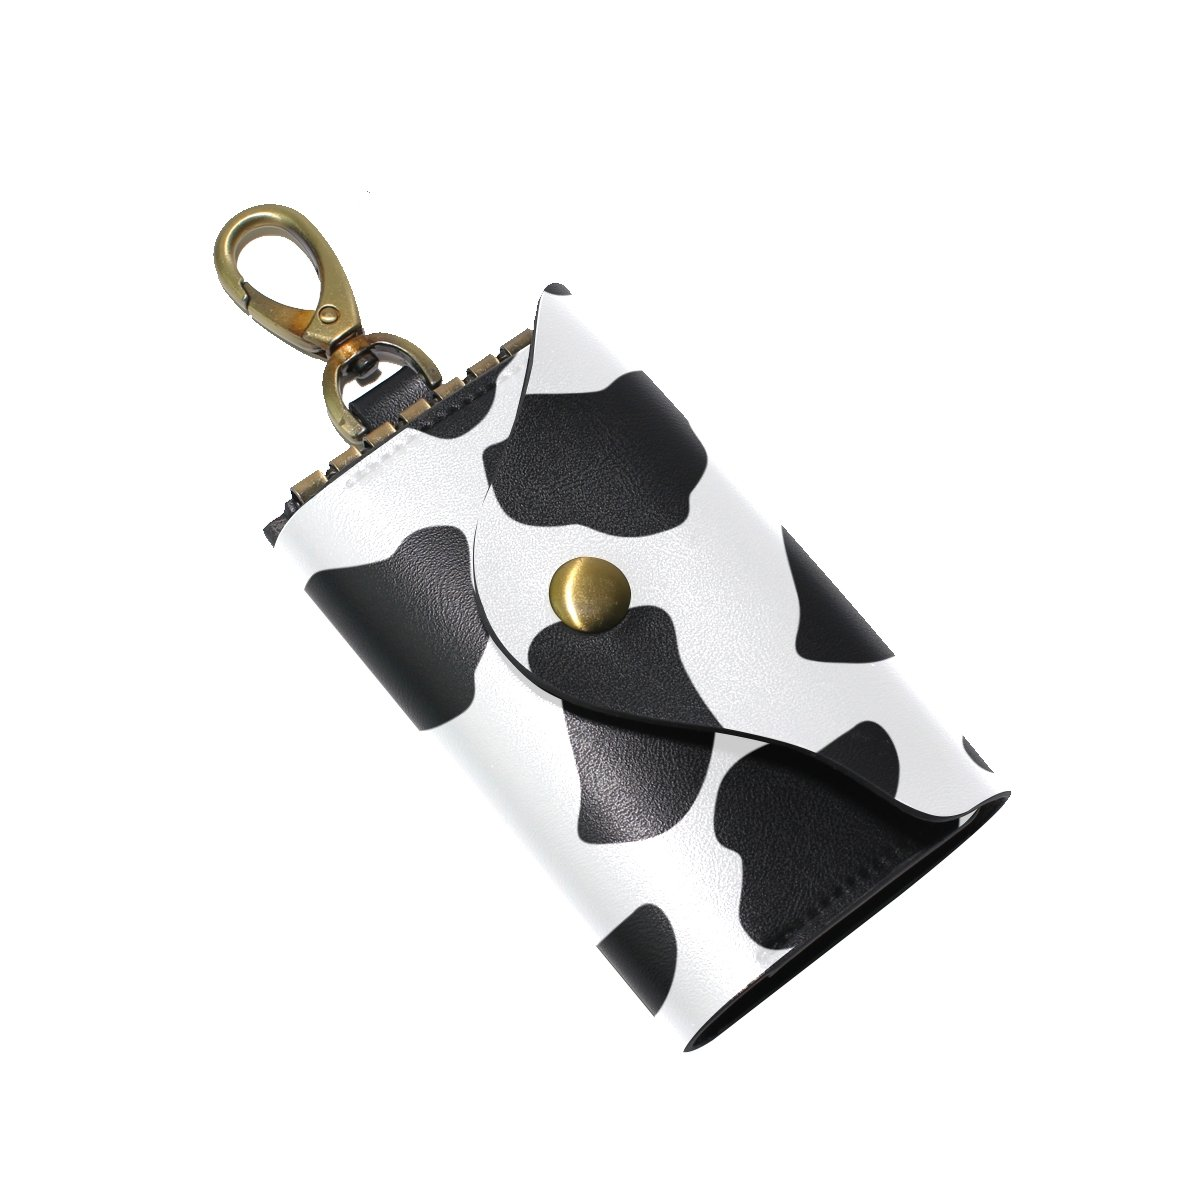 KEAKIA Cow Pattern Leather Key Case Wallets Tri-fold Key Holder Keychains with 6 Hooks 2 Slot Snap Closure for Men Women